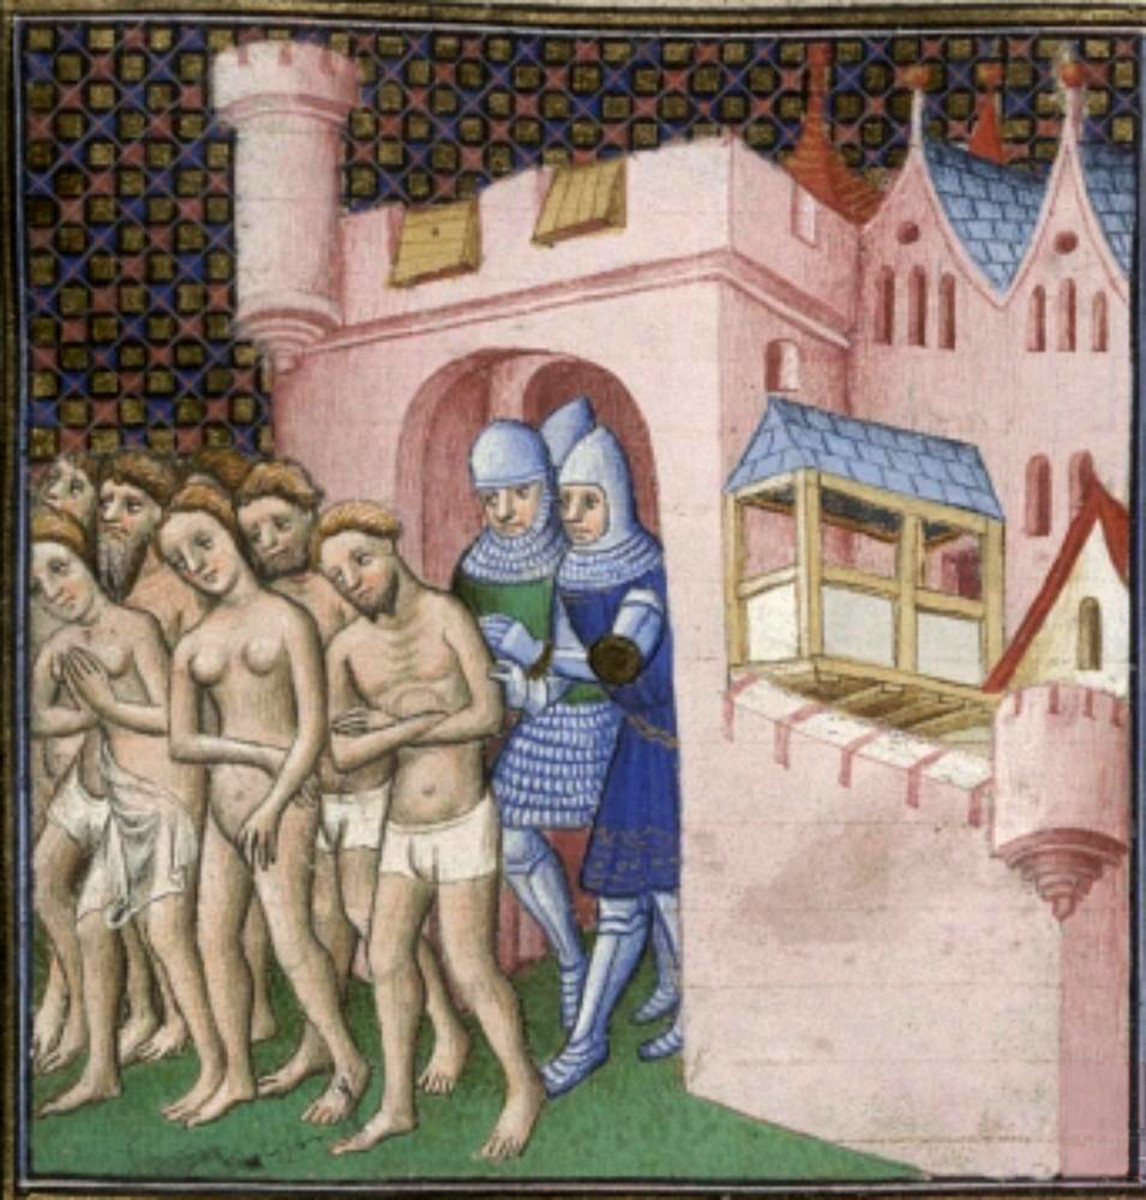 Cathars are forcibly expelled from Carcassonne, France.